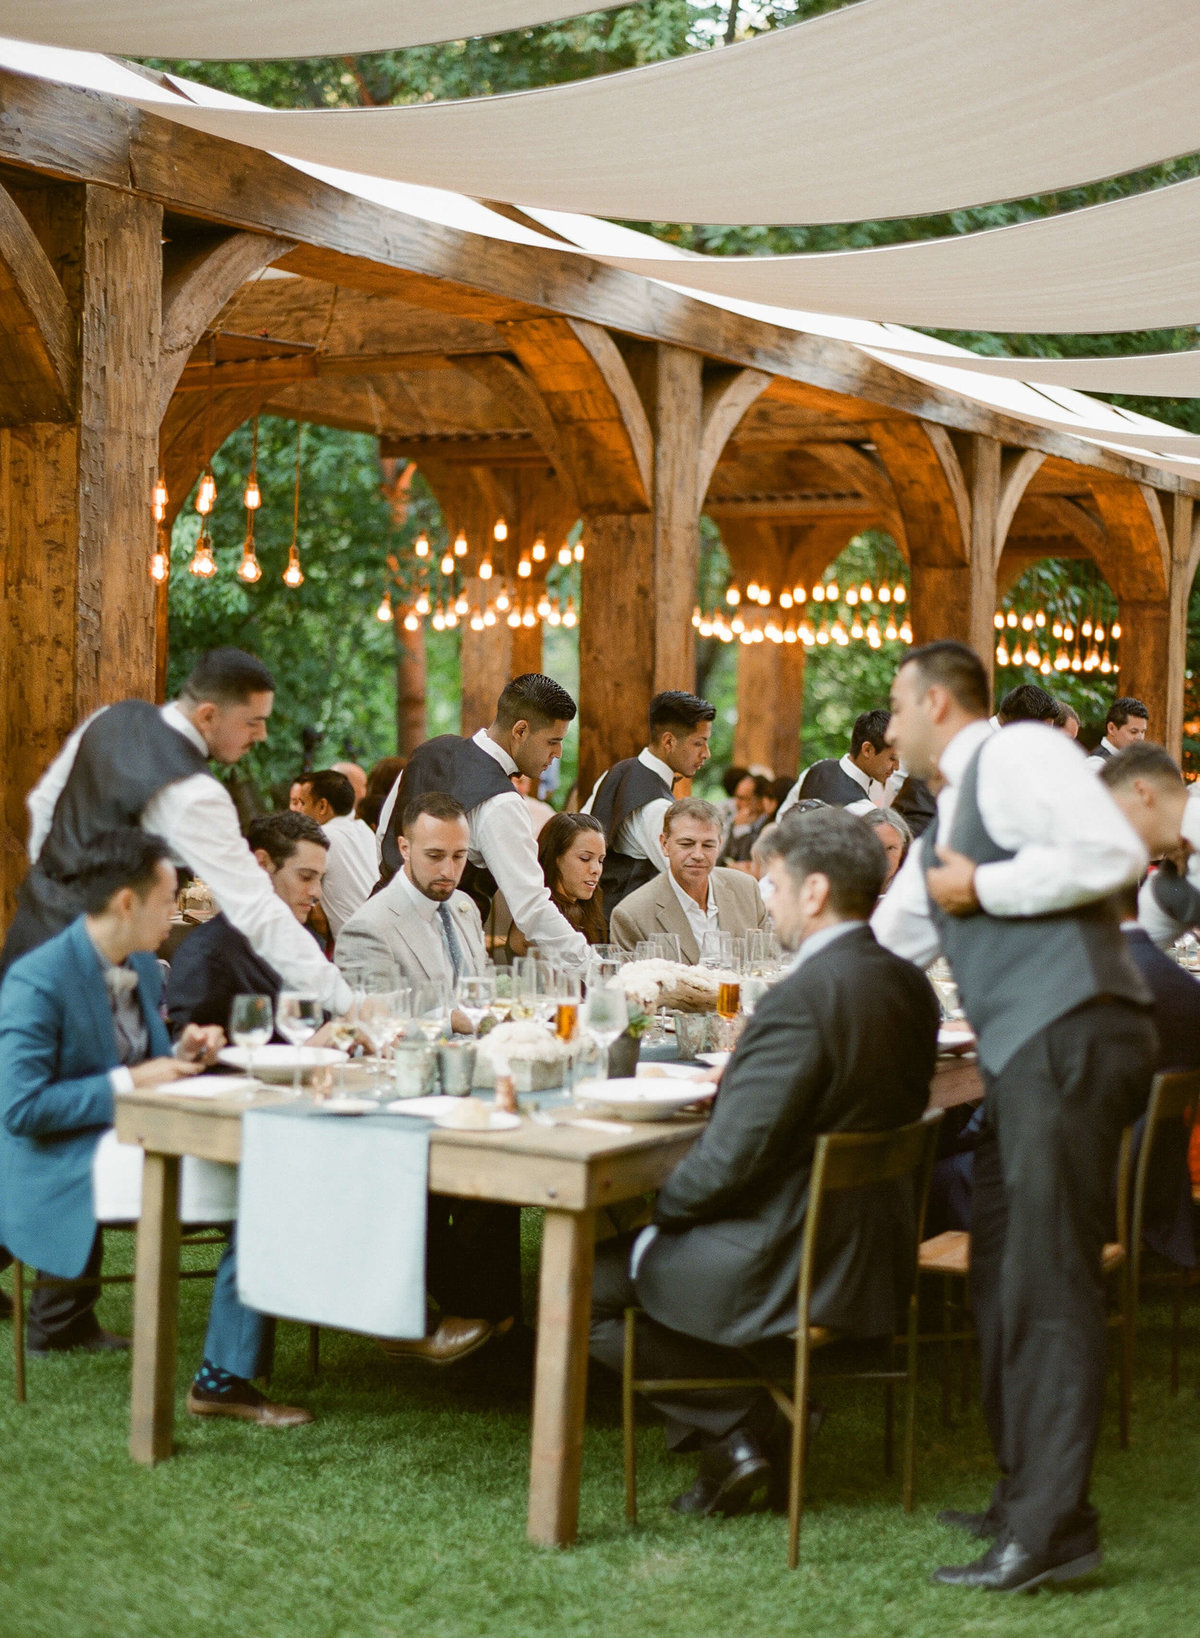 64-KTMerry-wedding-dinner-Meadowood-NapaValley